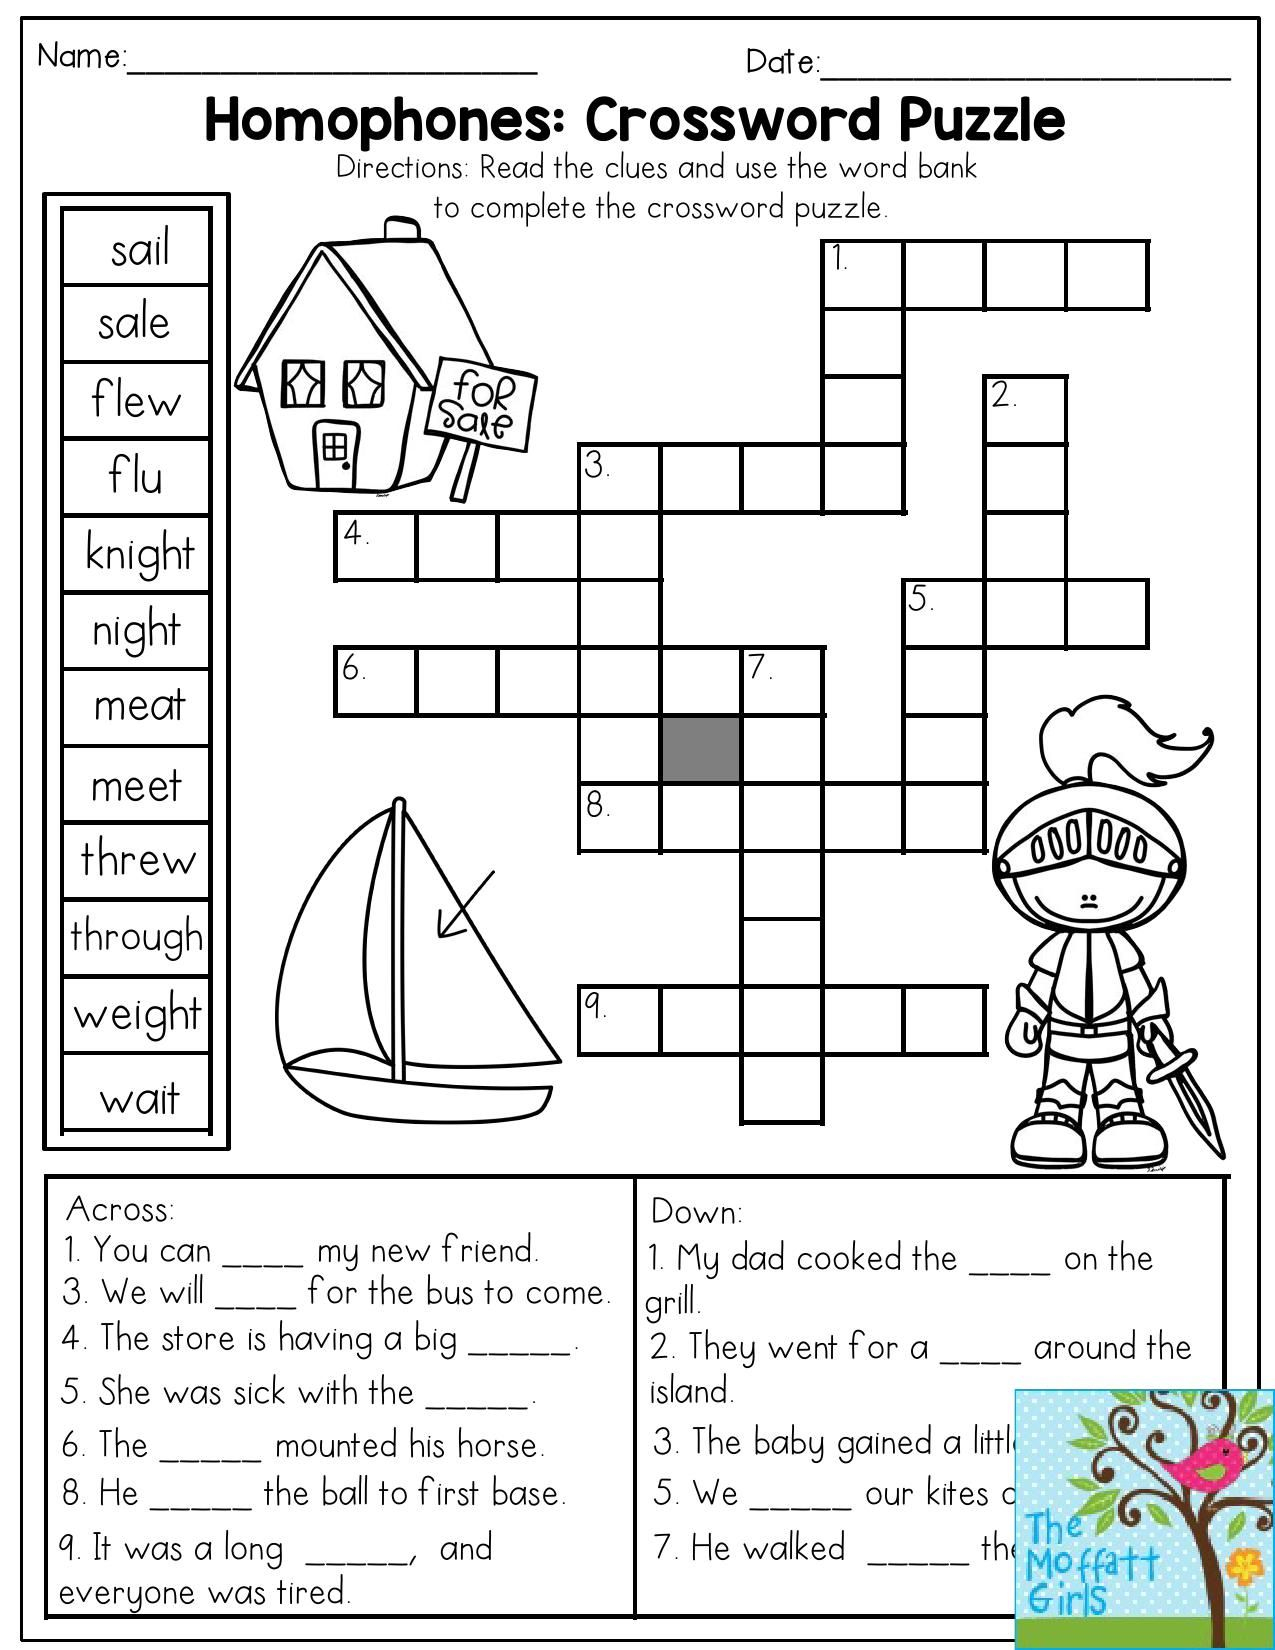 Homophones: Crossword Puzzle- Read The Clues And Use The Word Bank - Printable Crossword Puzzles For Third Graders